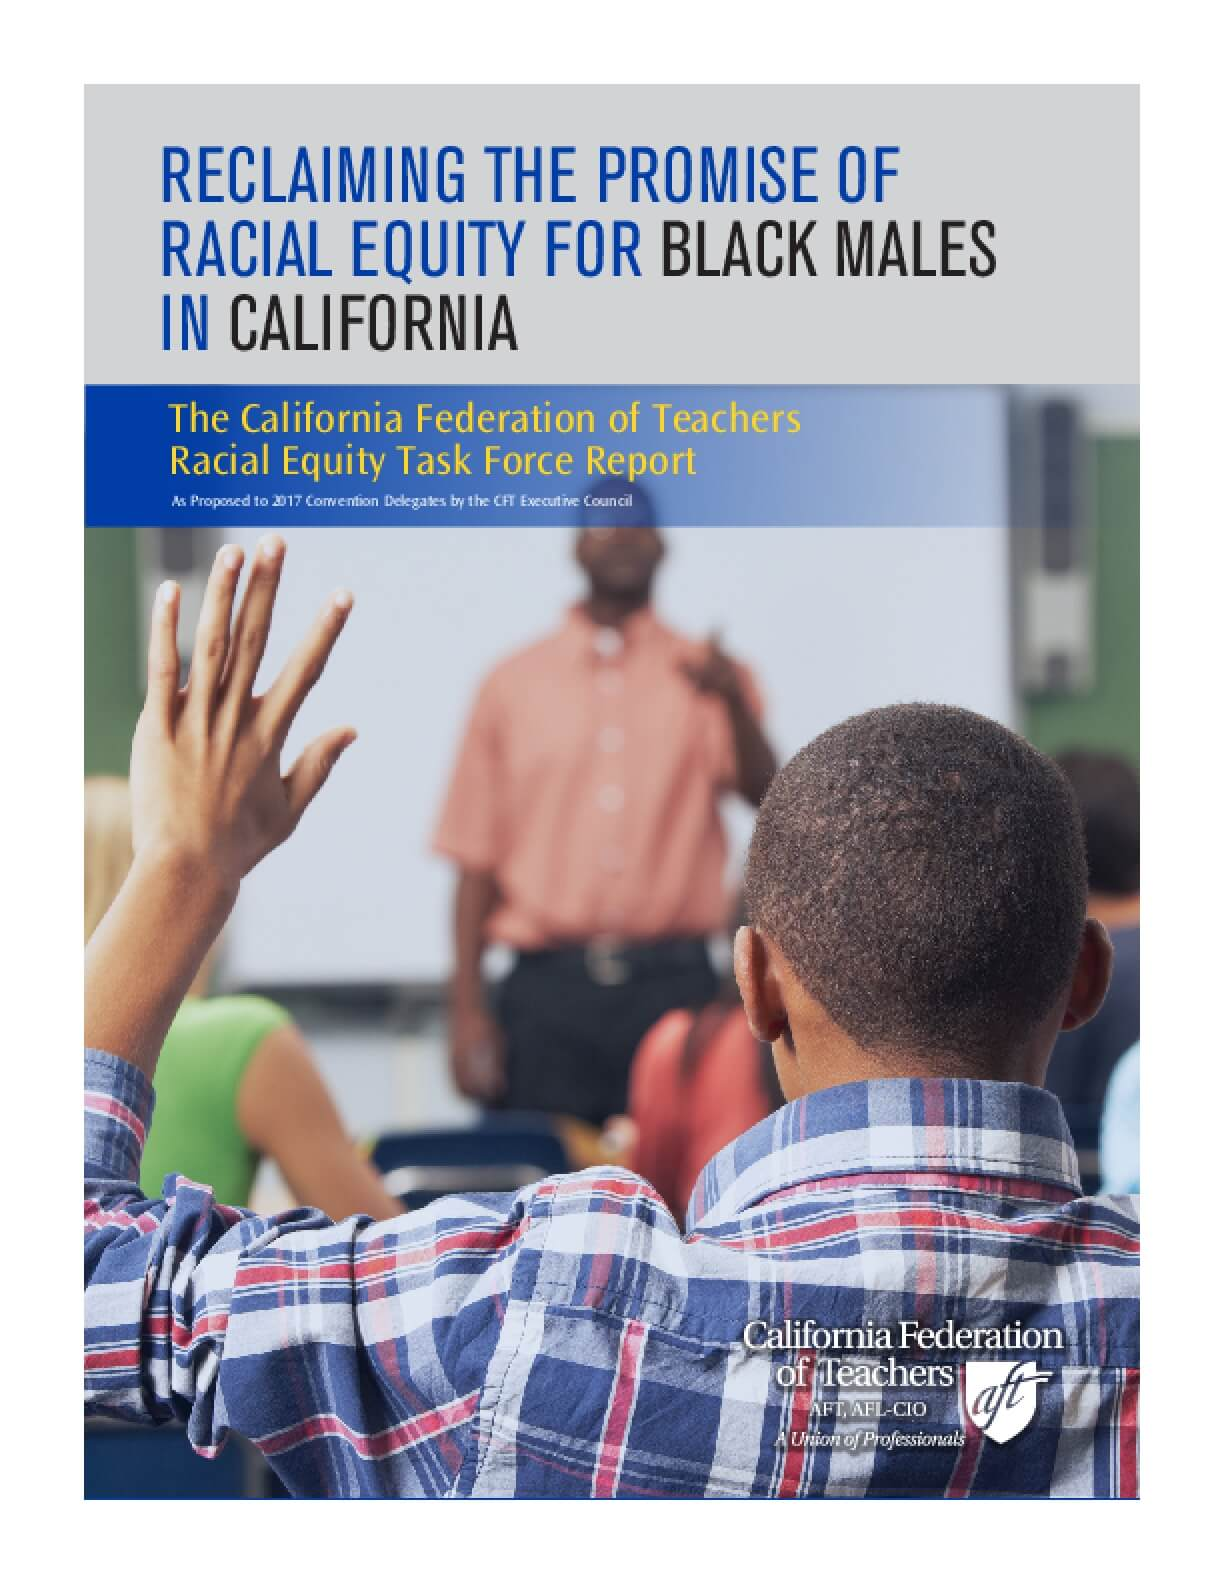 Reclaiming the Promise of Racial Equity for Black Males in California